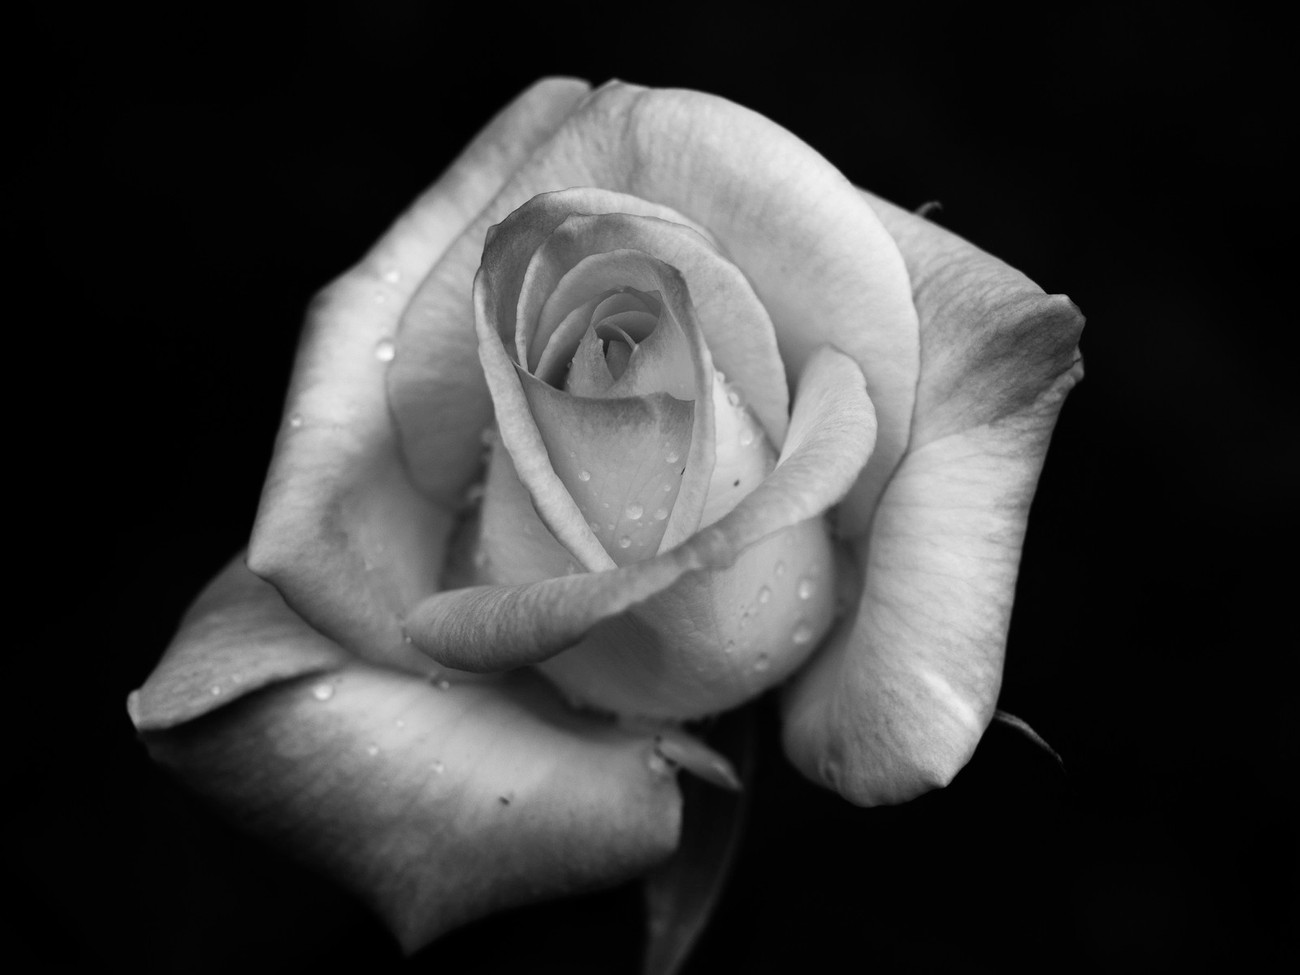 Black and White version of the Flamingo Rose